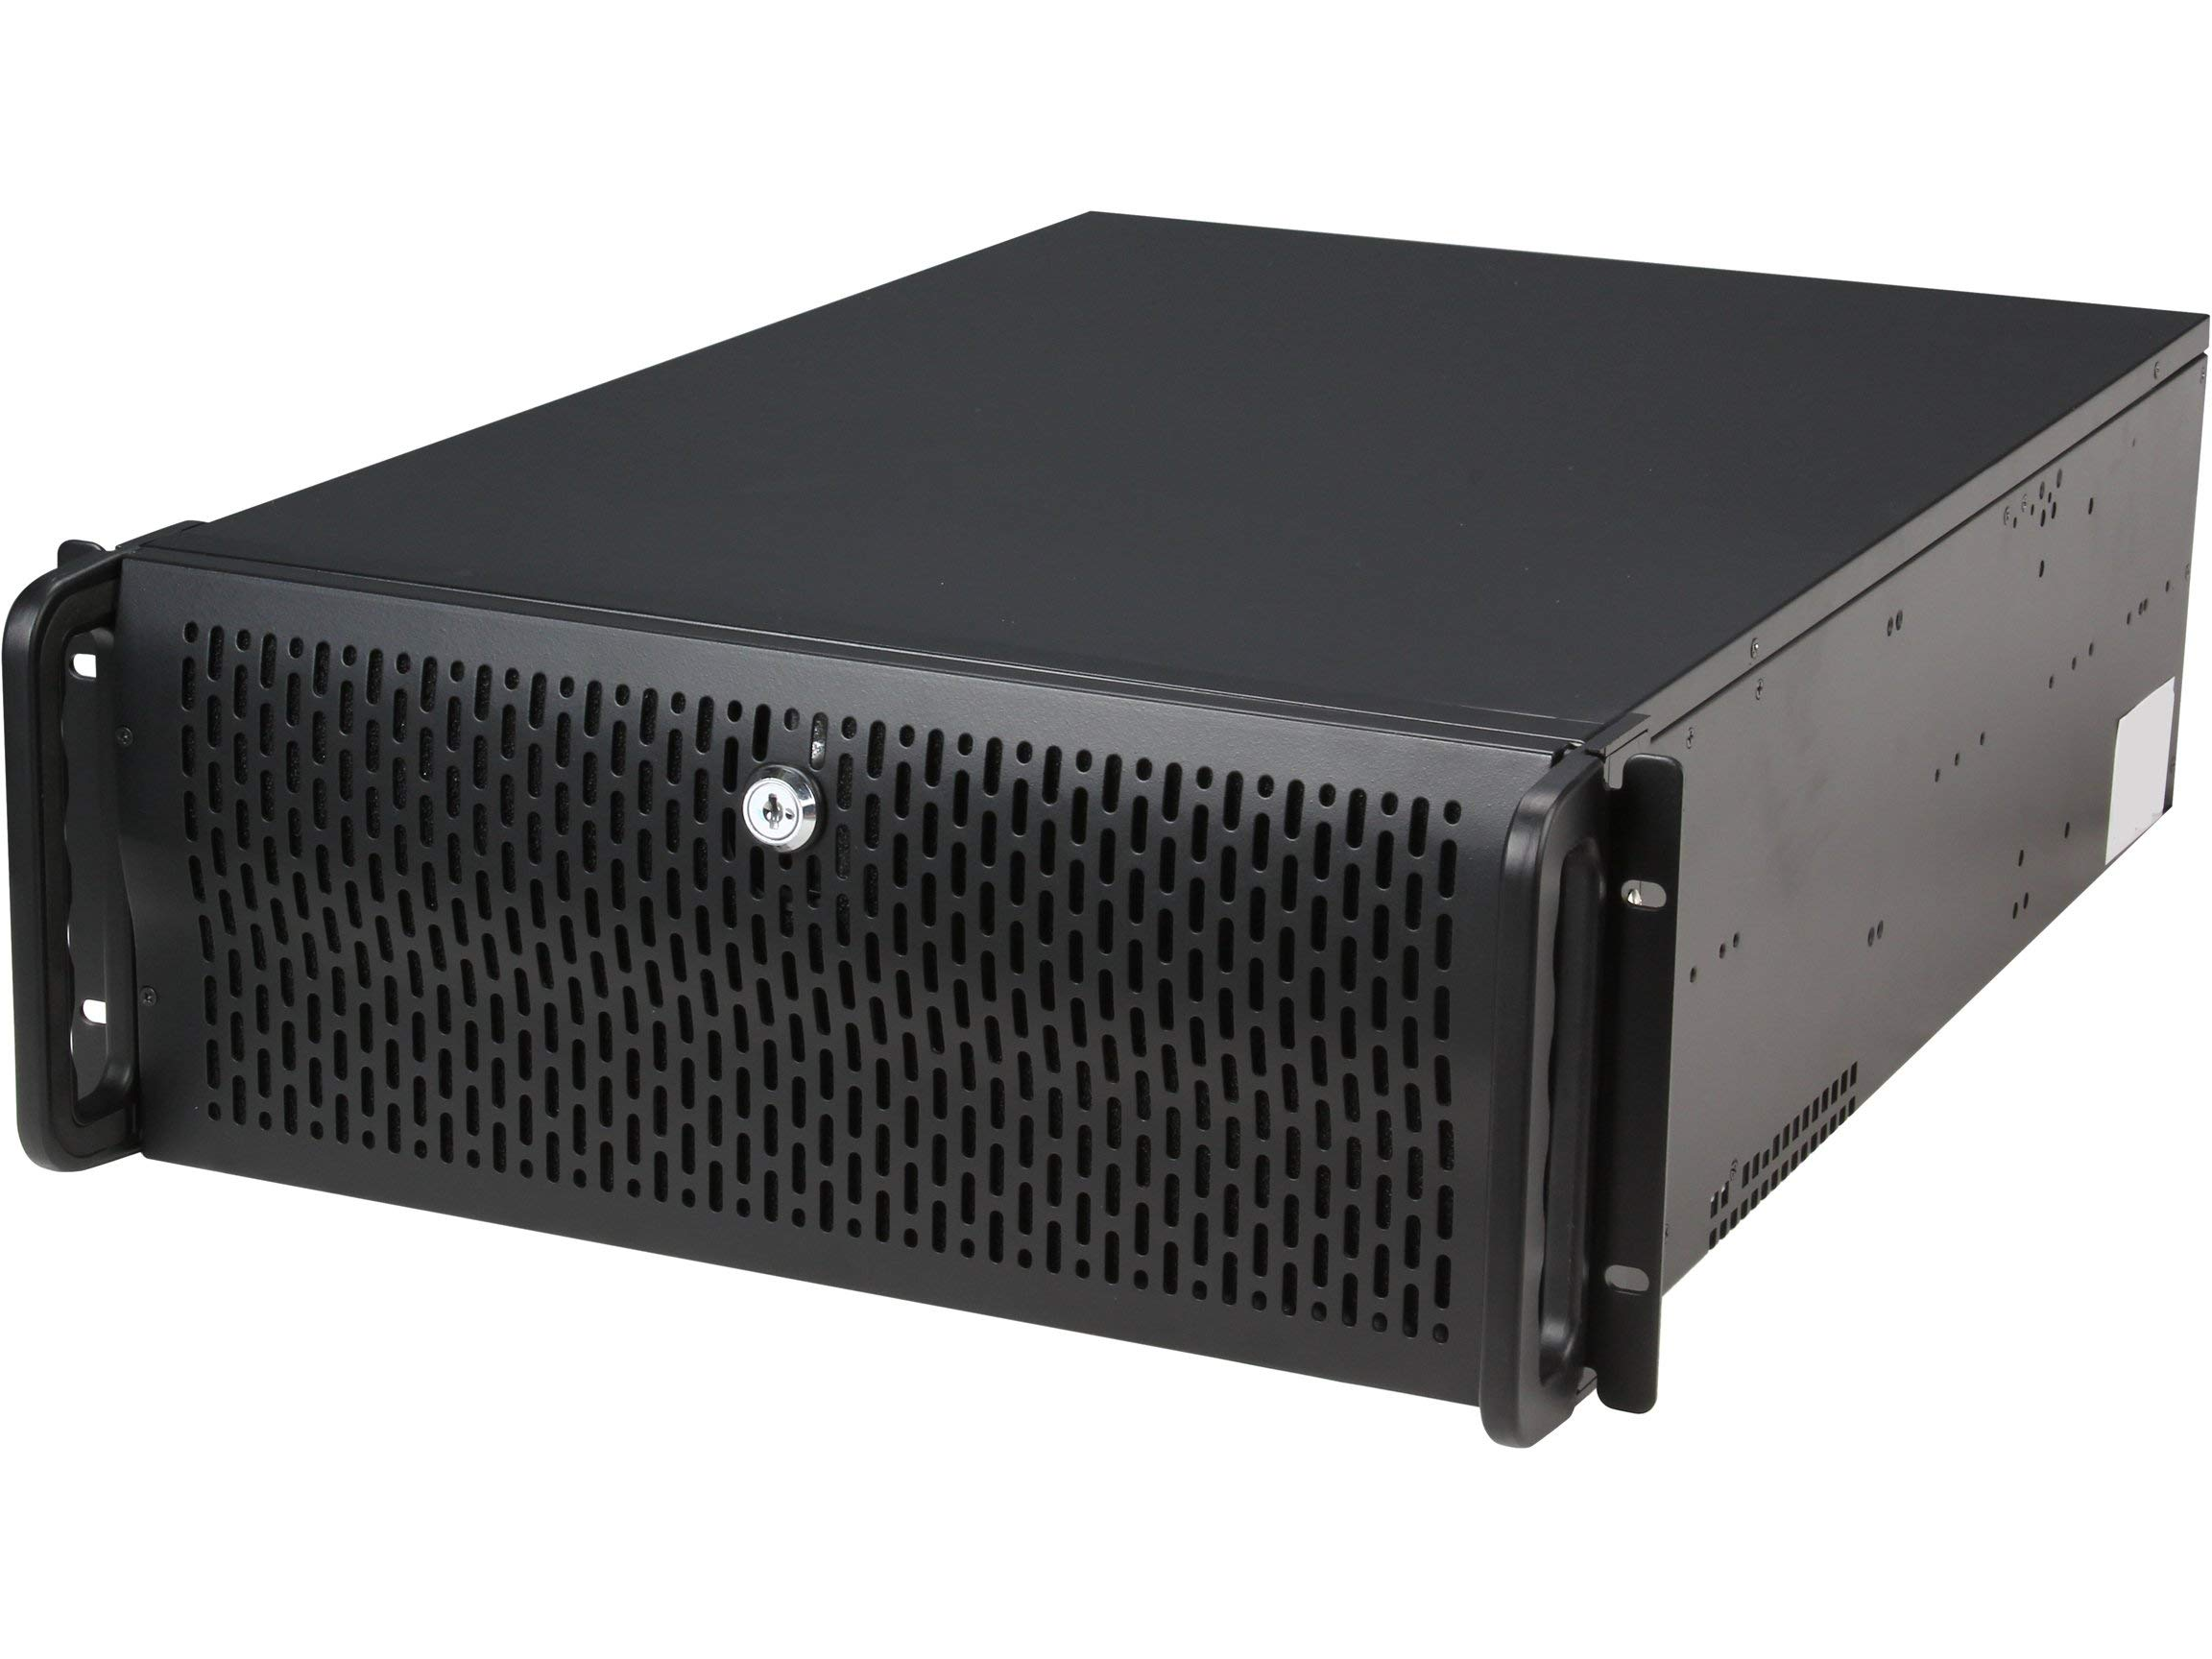 Rosewill 4U Server Chassis/Server Case/Rackmount Case, Metal Rack Mount Computer Case with 12 Hot Swap Bays & 5 Fans Pre-Installed (RSV-L4412) (Renewed)